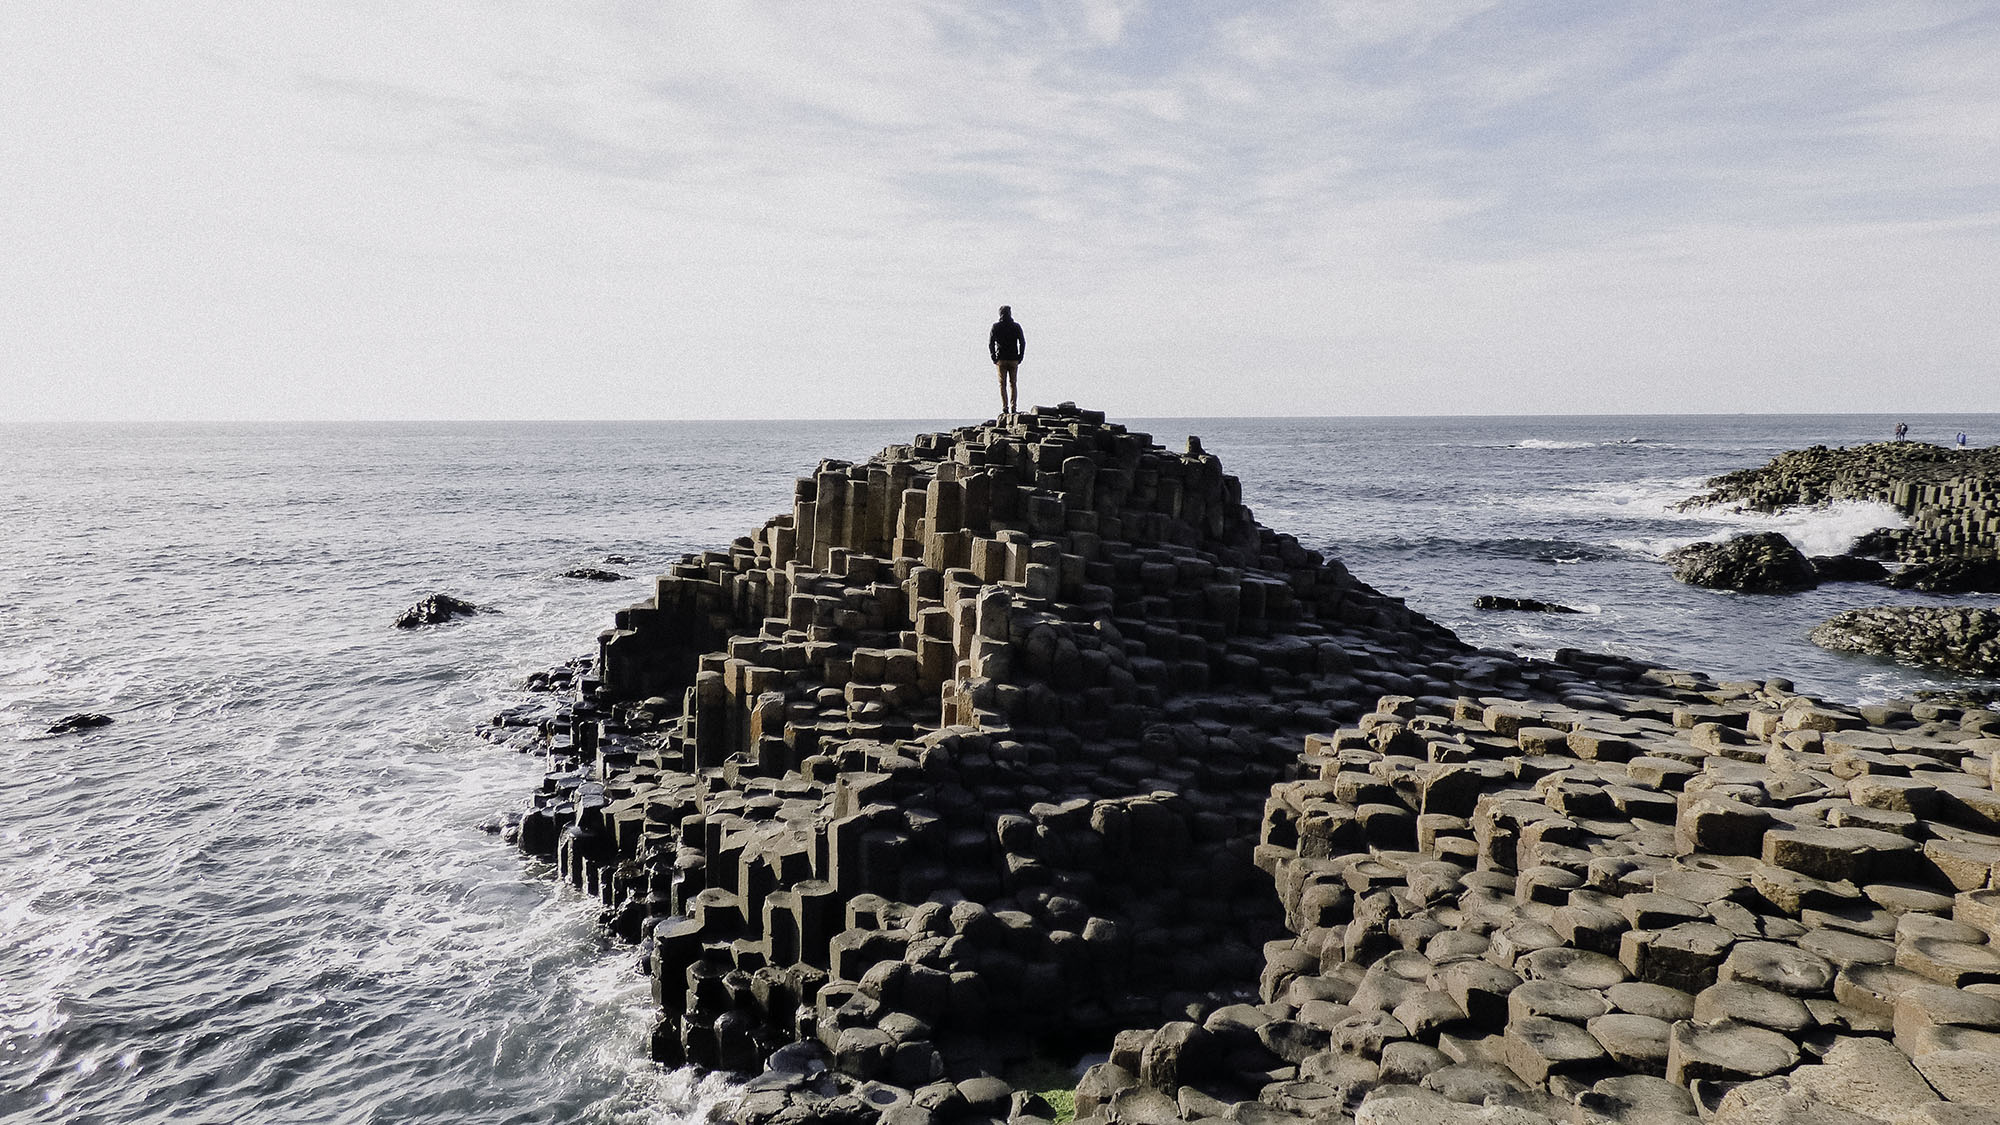 This 7 day Ireland itinerary also includes Northern Ireland and the famous Giant's Causeway